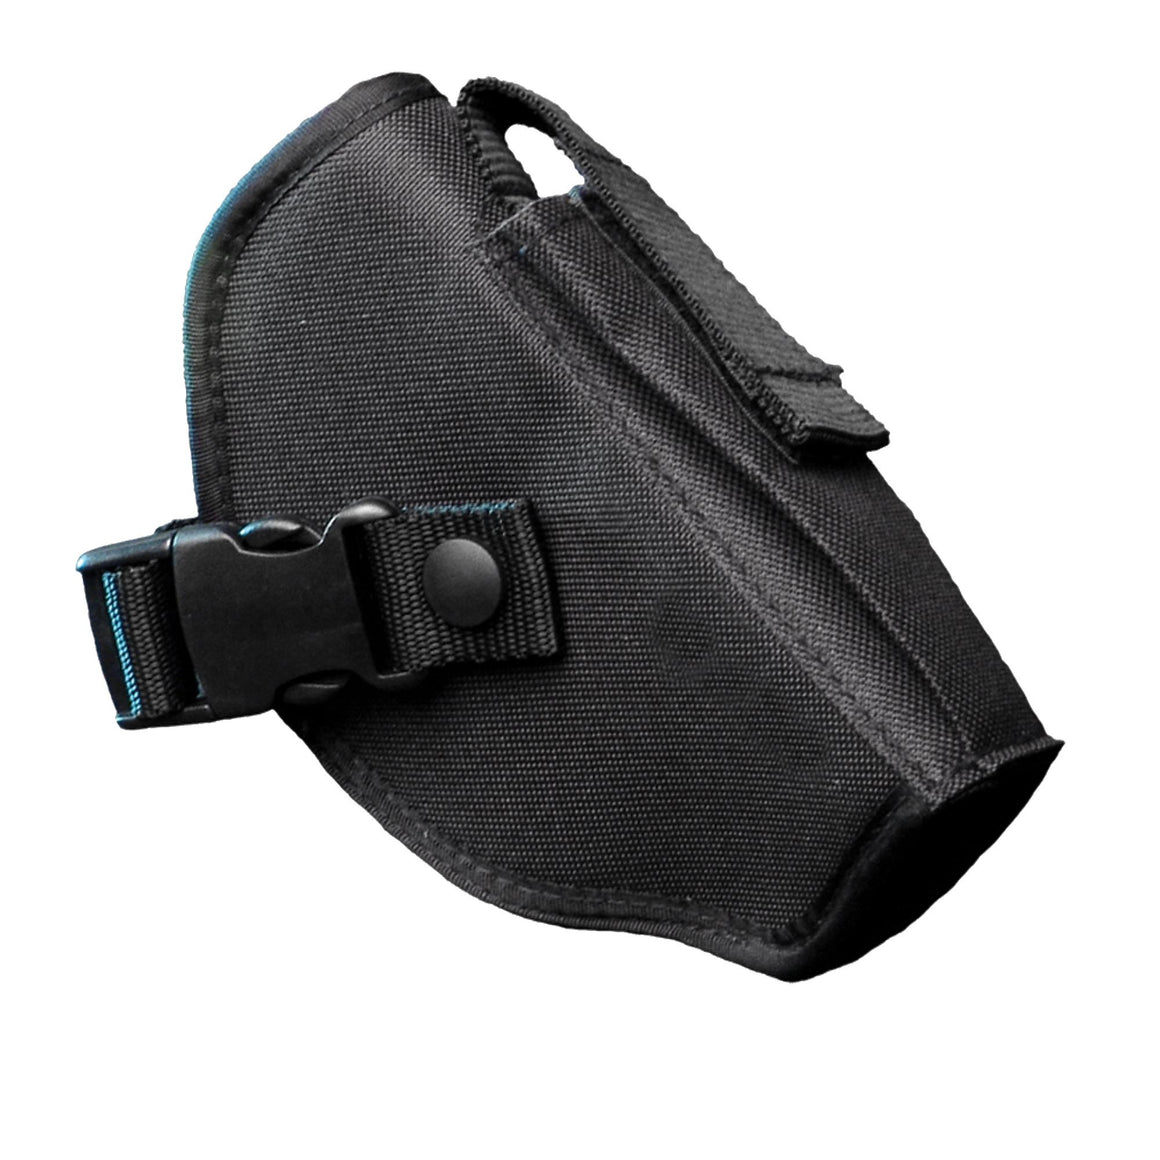 Soft Air Accessories - Holster w- Velcro